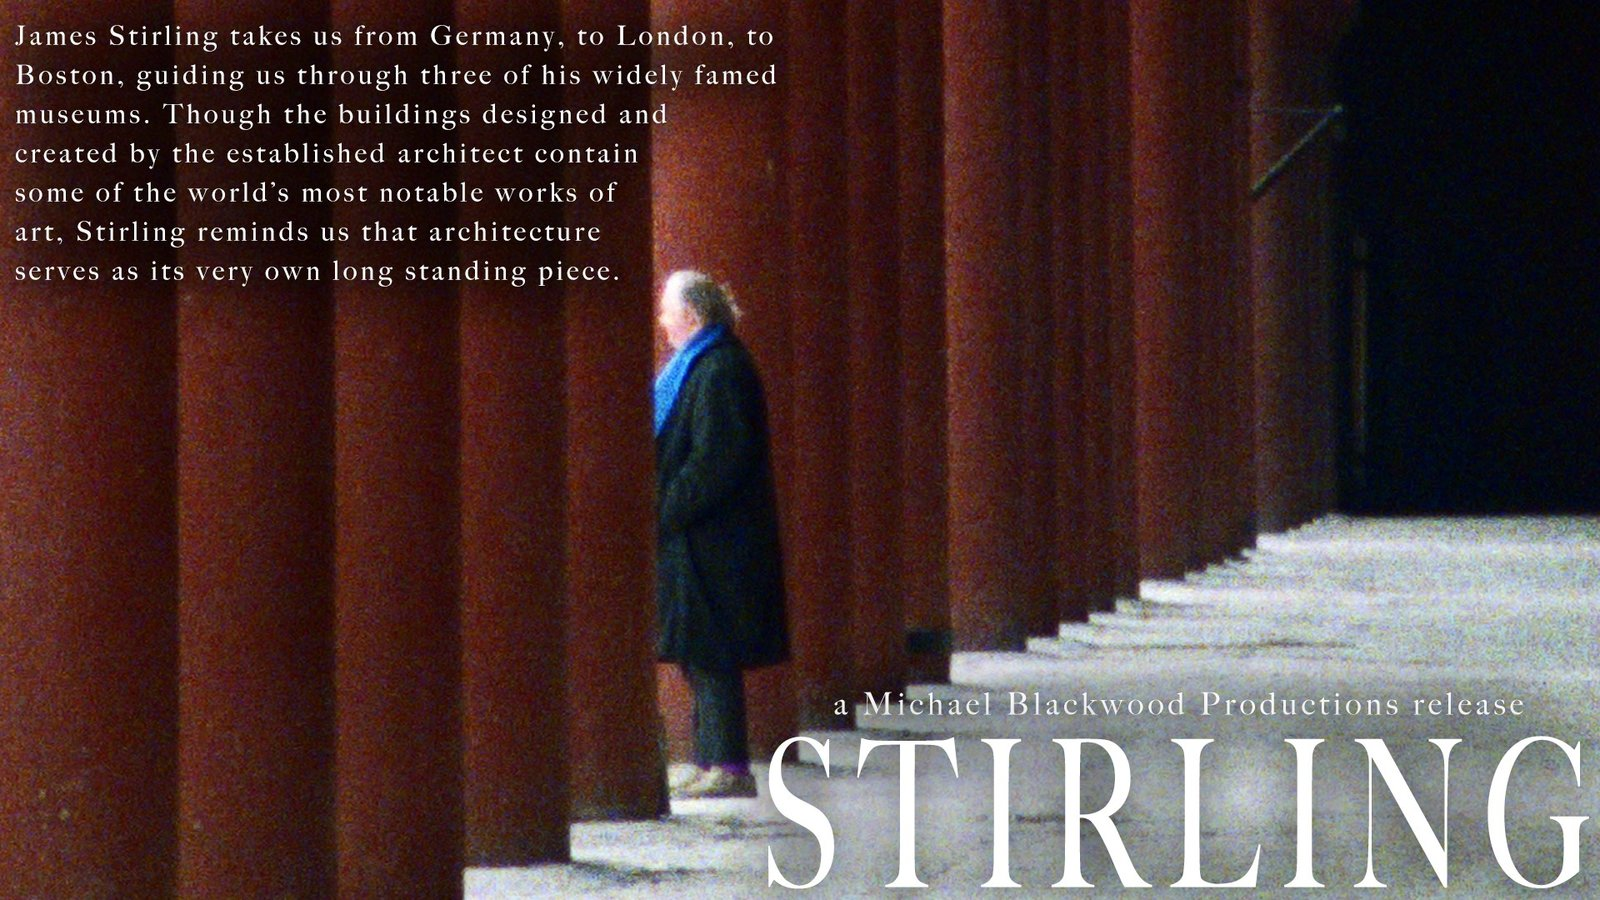 Stirling - Three Museums Designed by James Stirling